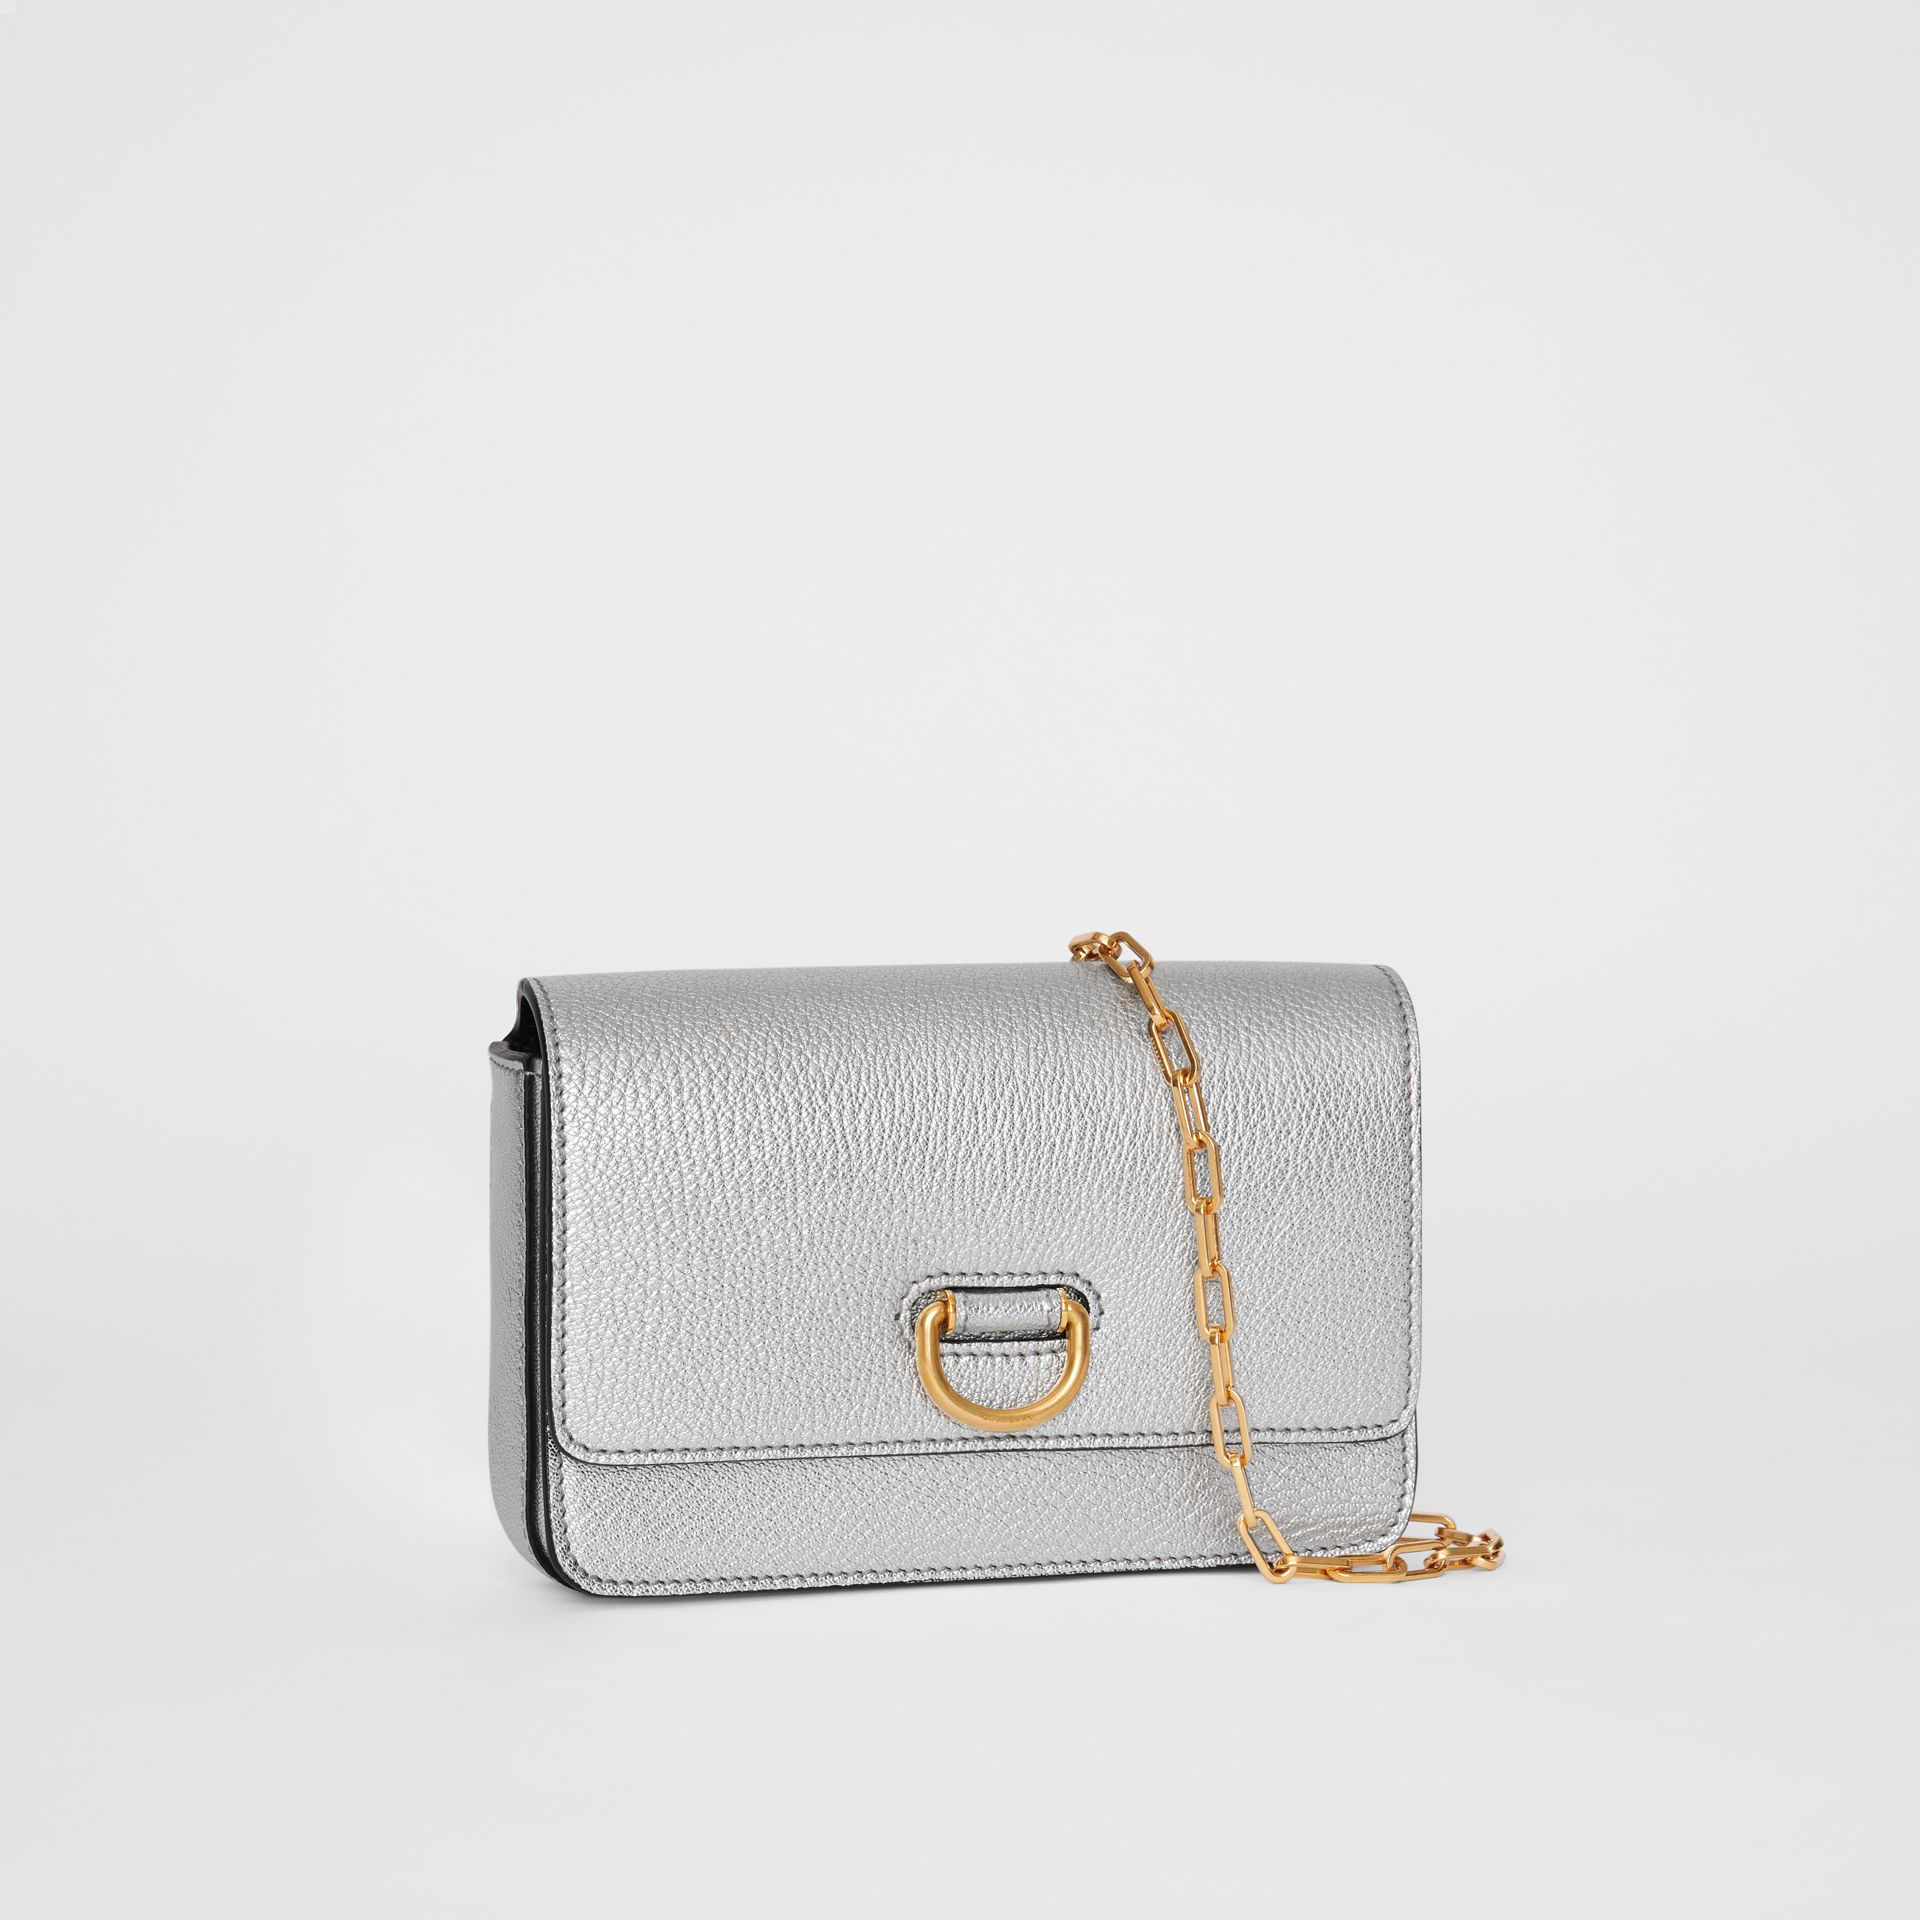 Mini sac The D-ring en cuir (Argent) - Femme | Burberry Canada - photo de la galerie 6